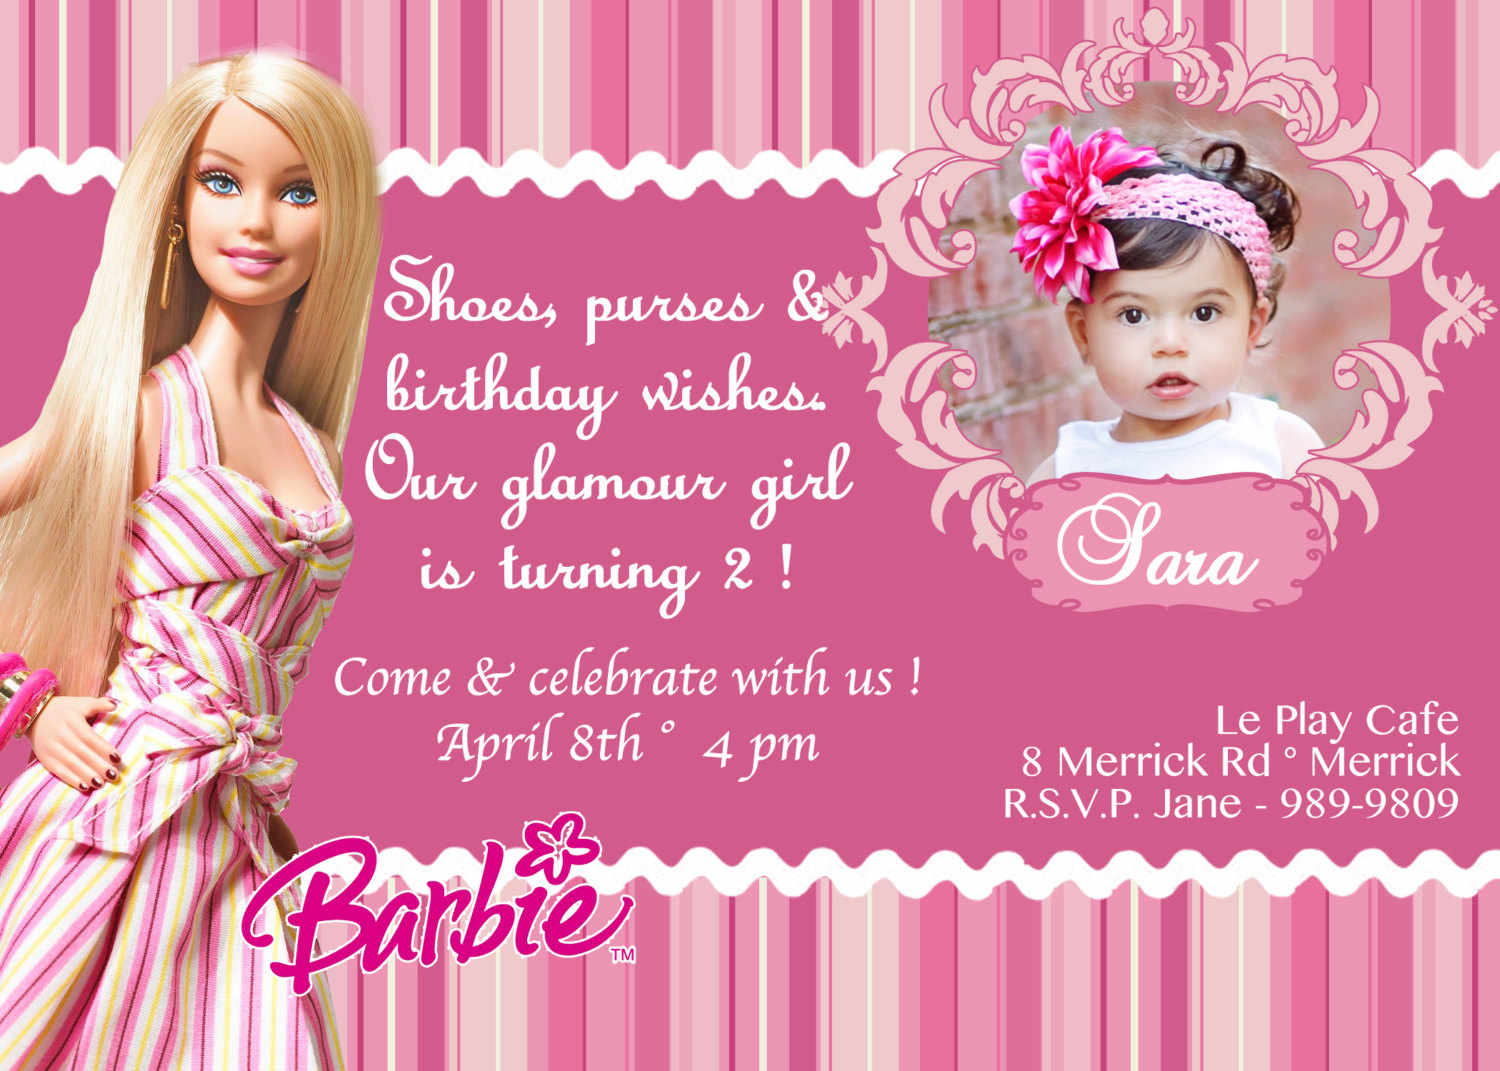 barbie theme birthday invitation card ; 6f55538f7e688c18f325eeefa273aade